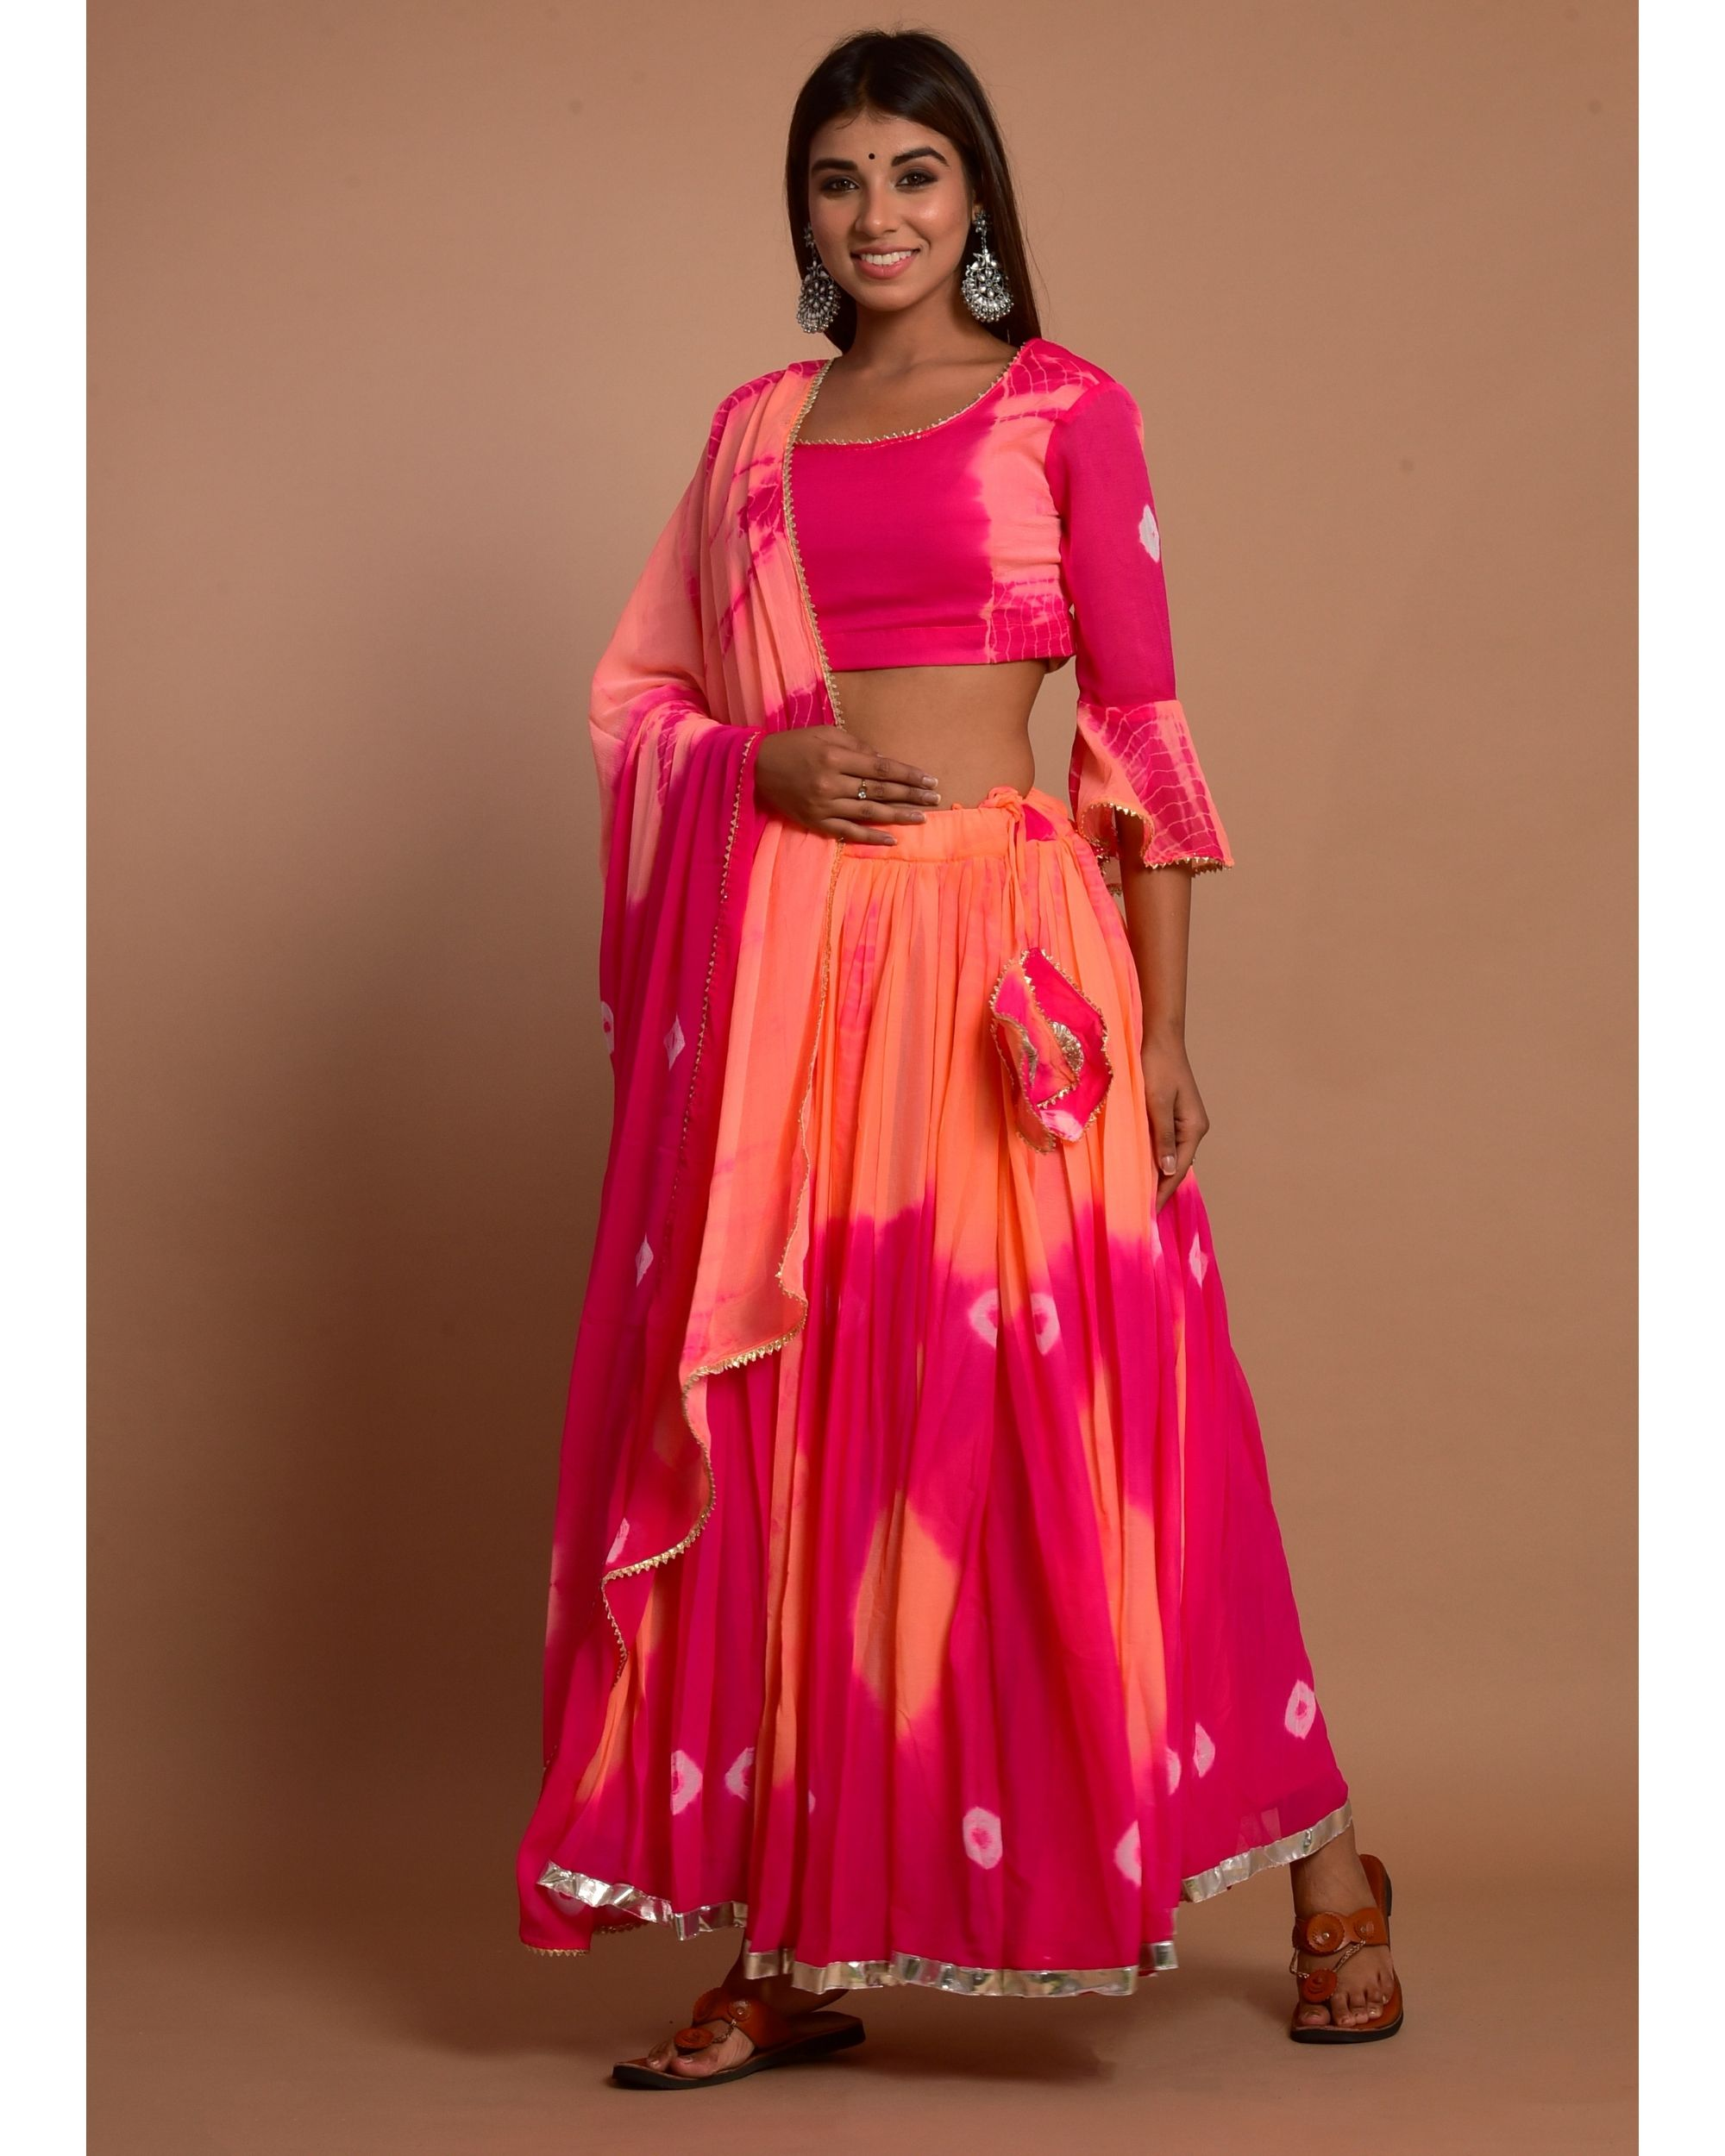 Hot pink and peach tie and dye choli and lehenga with dupatta - Set Of Three